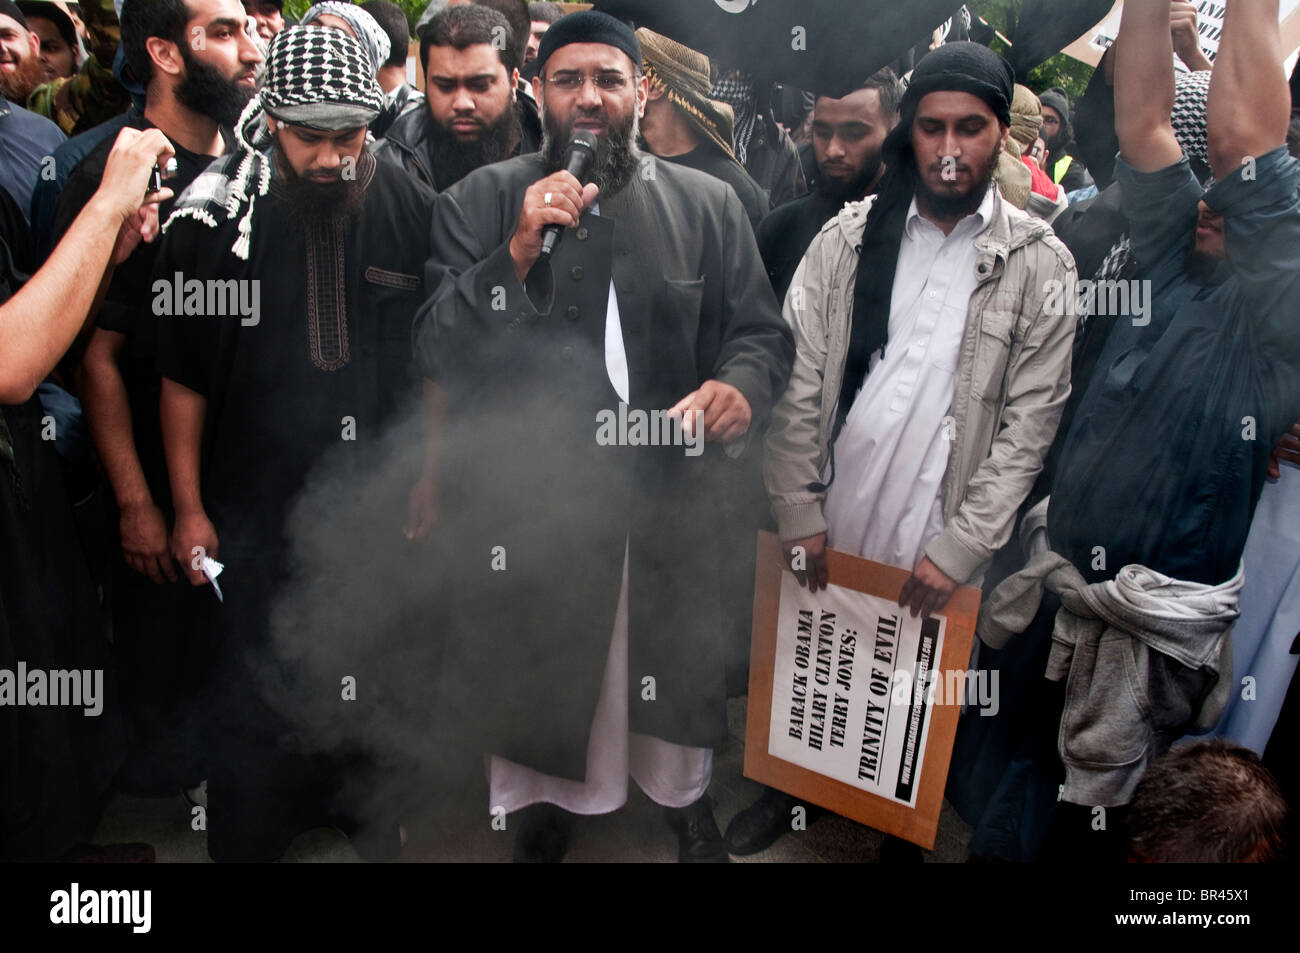 An extremist group 'Muslims Against the Crusades',led by Anjem Choudary (centre) burn the American flag - Stock Image